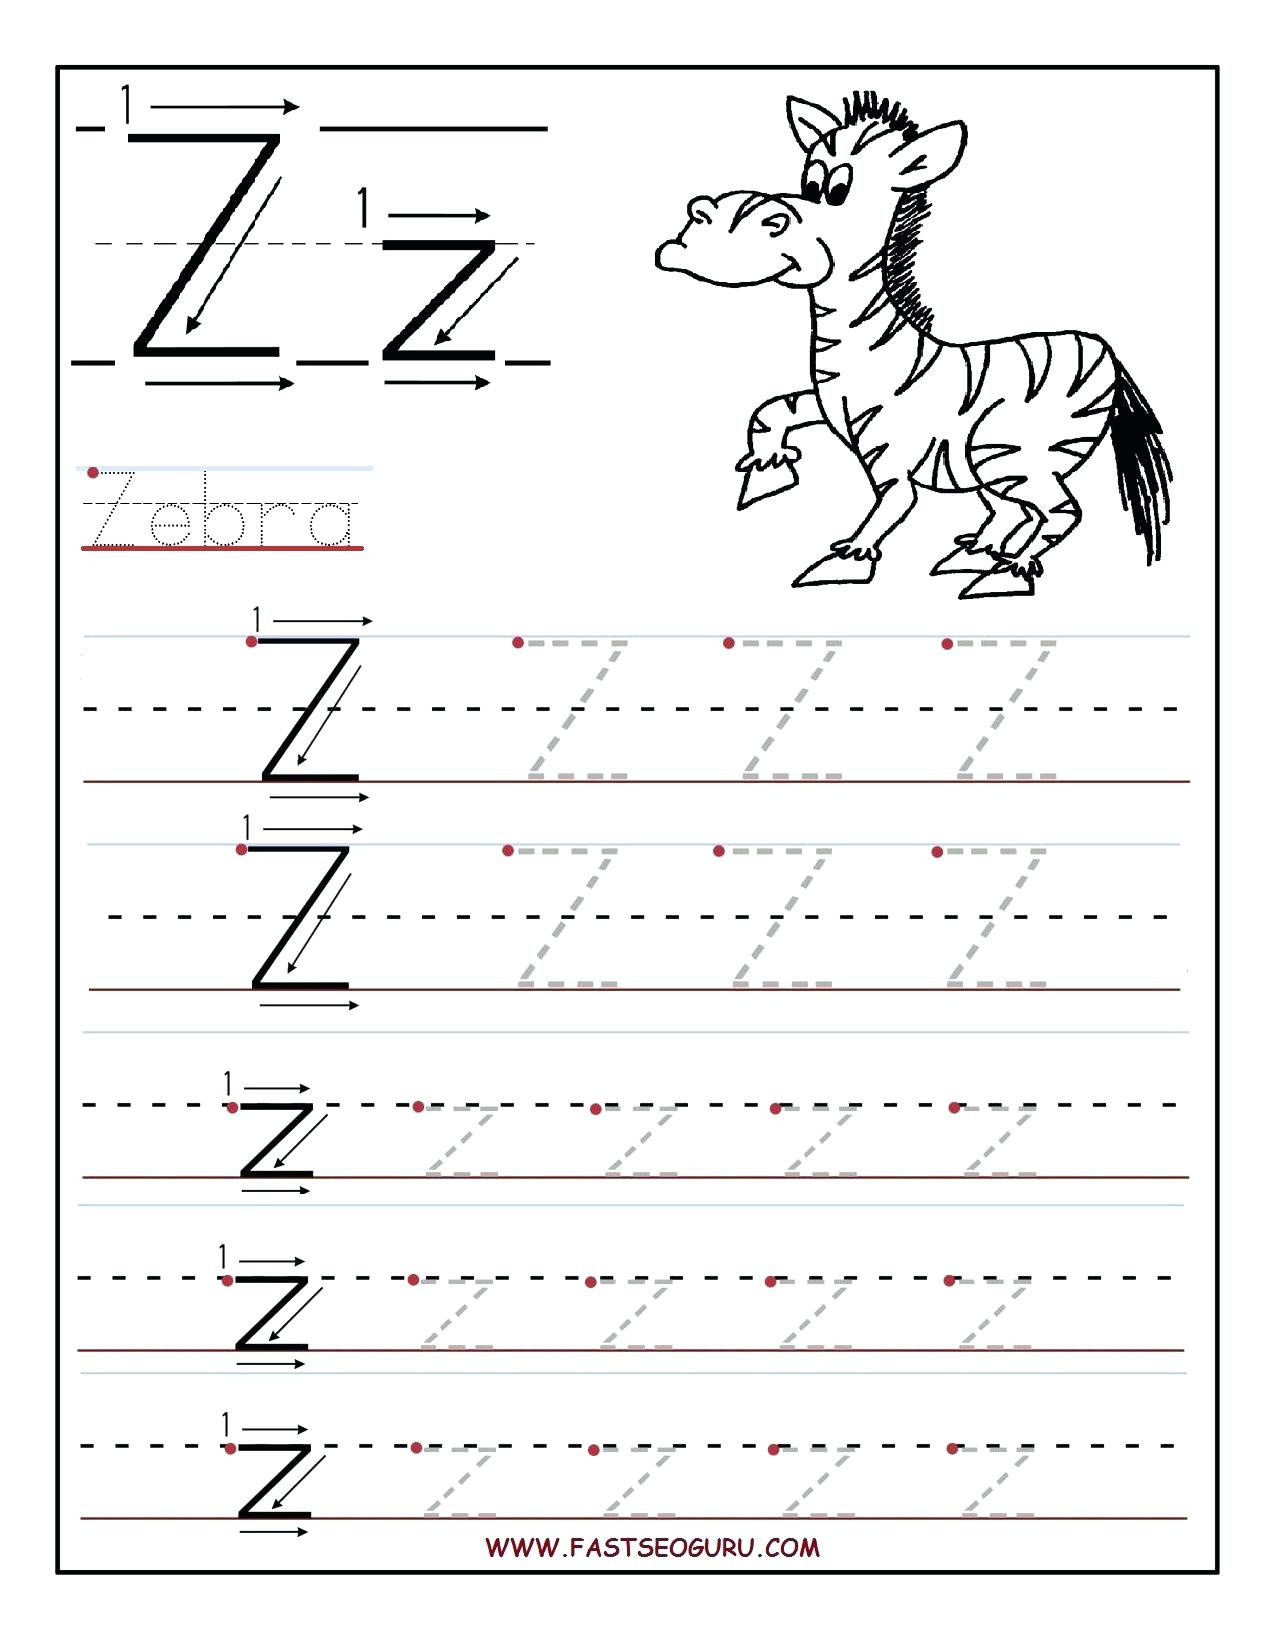 Letter Z Preschool Pinon Decor Tracing Worksheets Printable - Letter Z Worksheets Free Printable